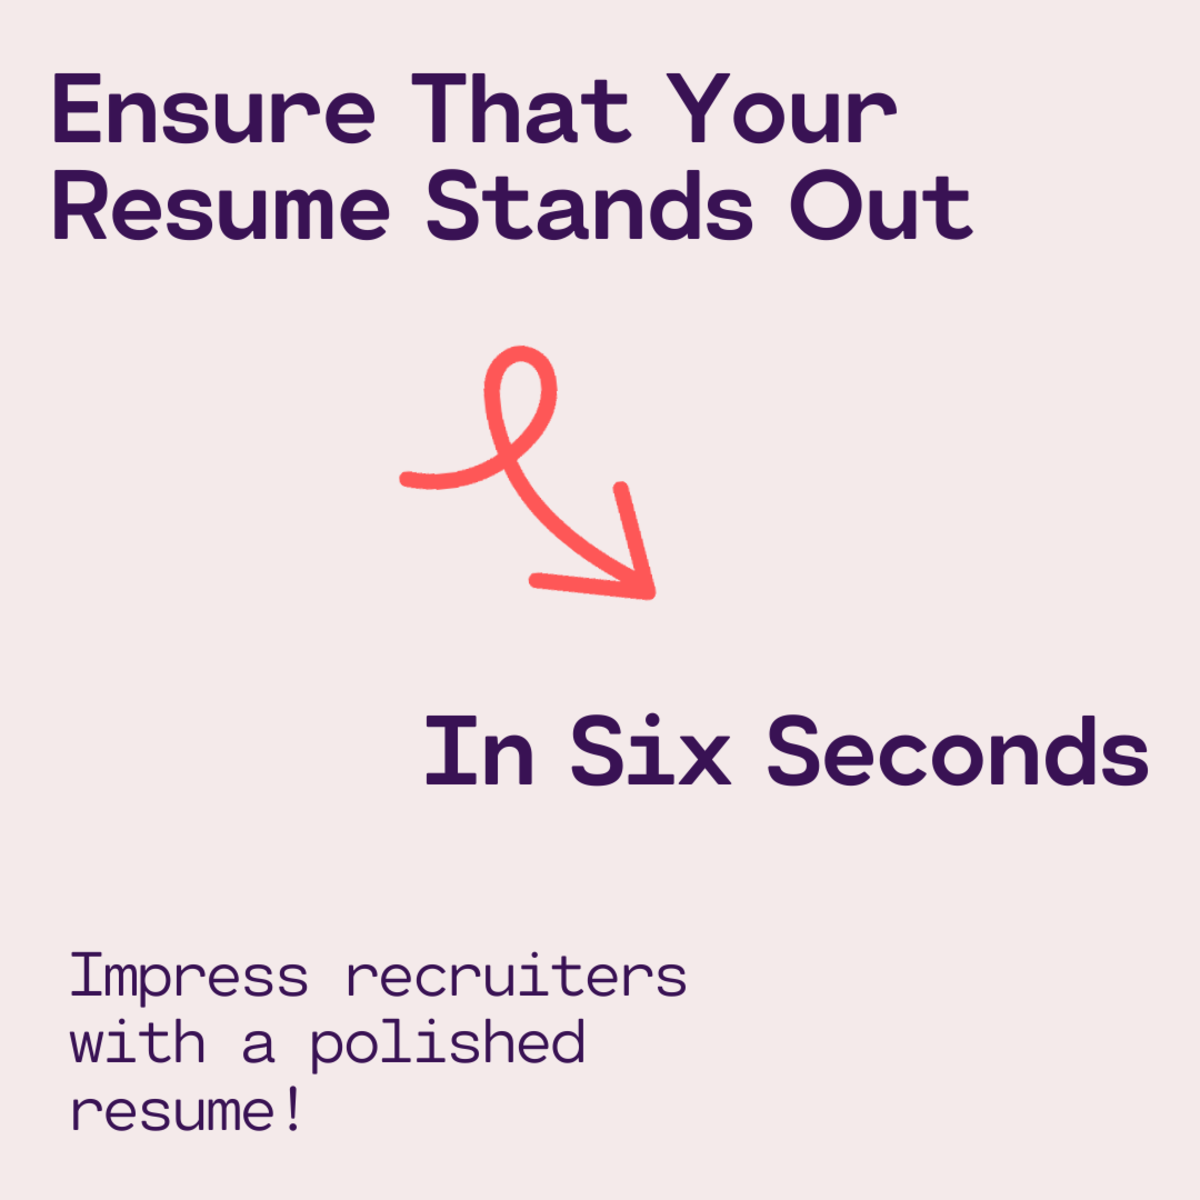 This article includes tips to guarantee that your resume stands out.